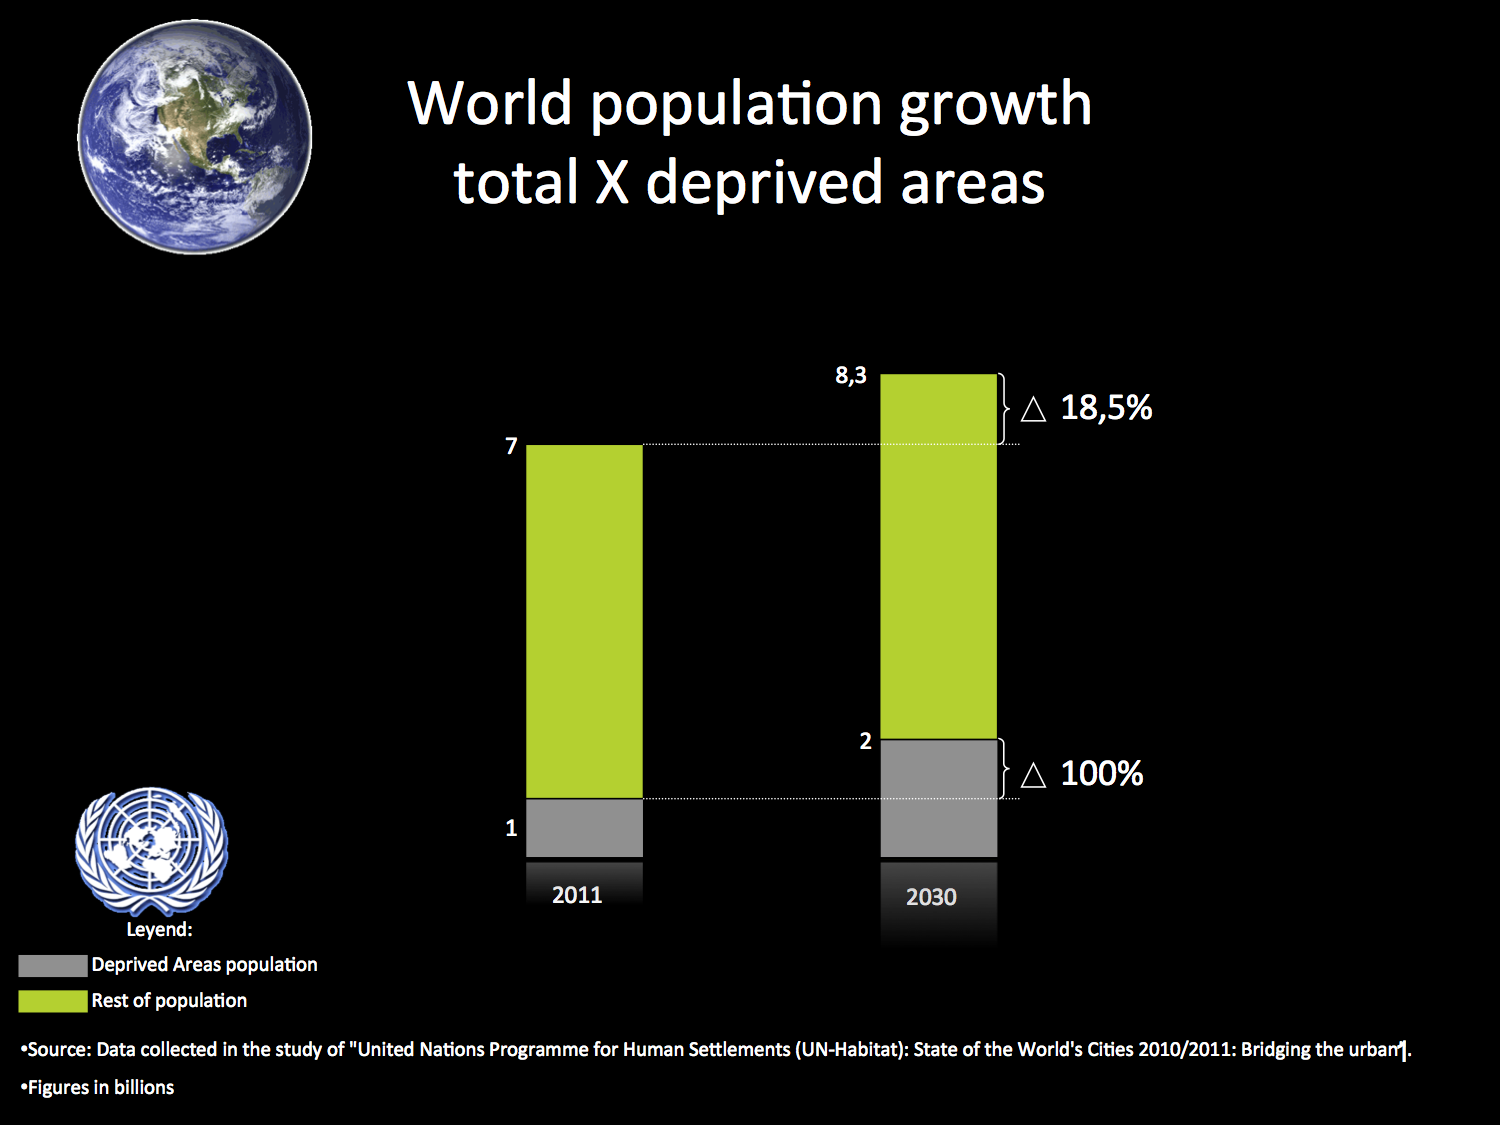 WORLD x DEPRIVED AREAS POPULATION GROWTH